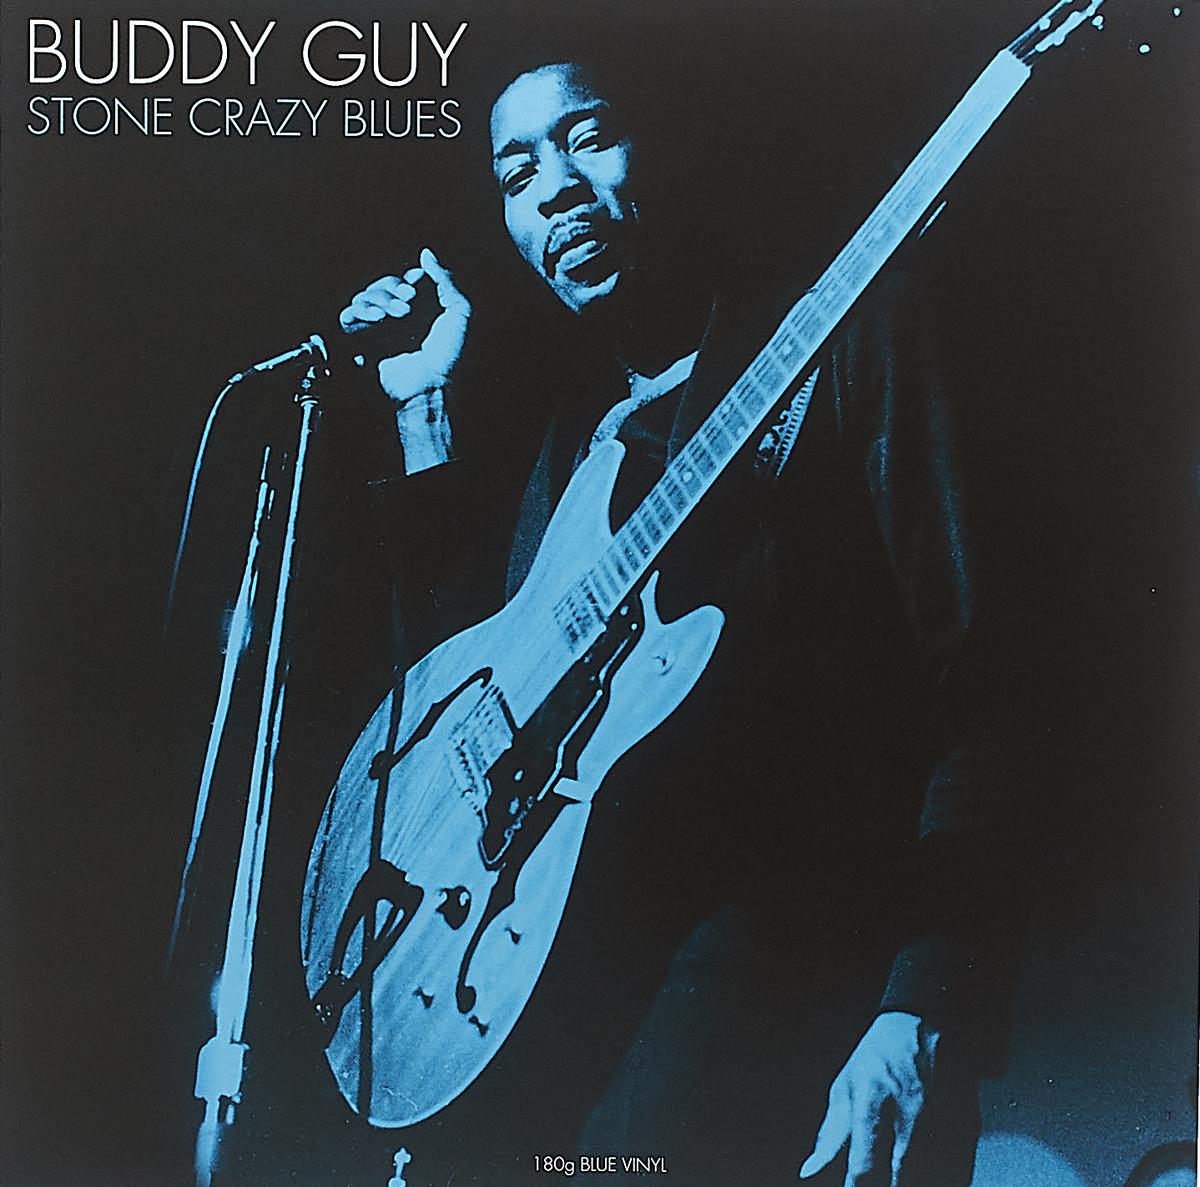 Бадди Гай Buddy Guy. Stone Crazy Blues (LP) бадди гай отис раш айк тернер ли джексон шеки джейк вилли диксон buddy guy otis rush ike turner cobra 2 cd